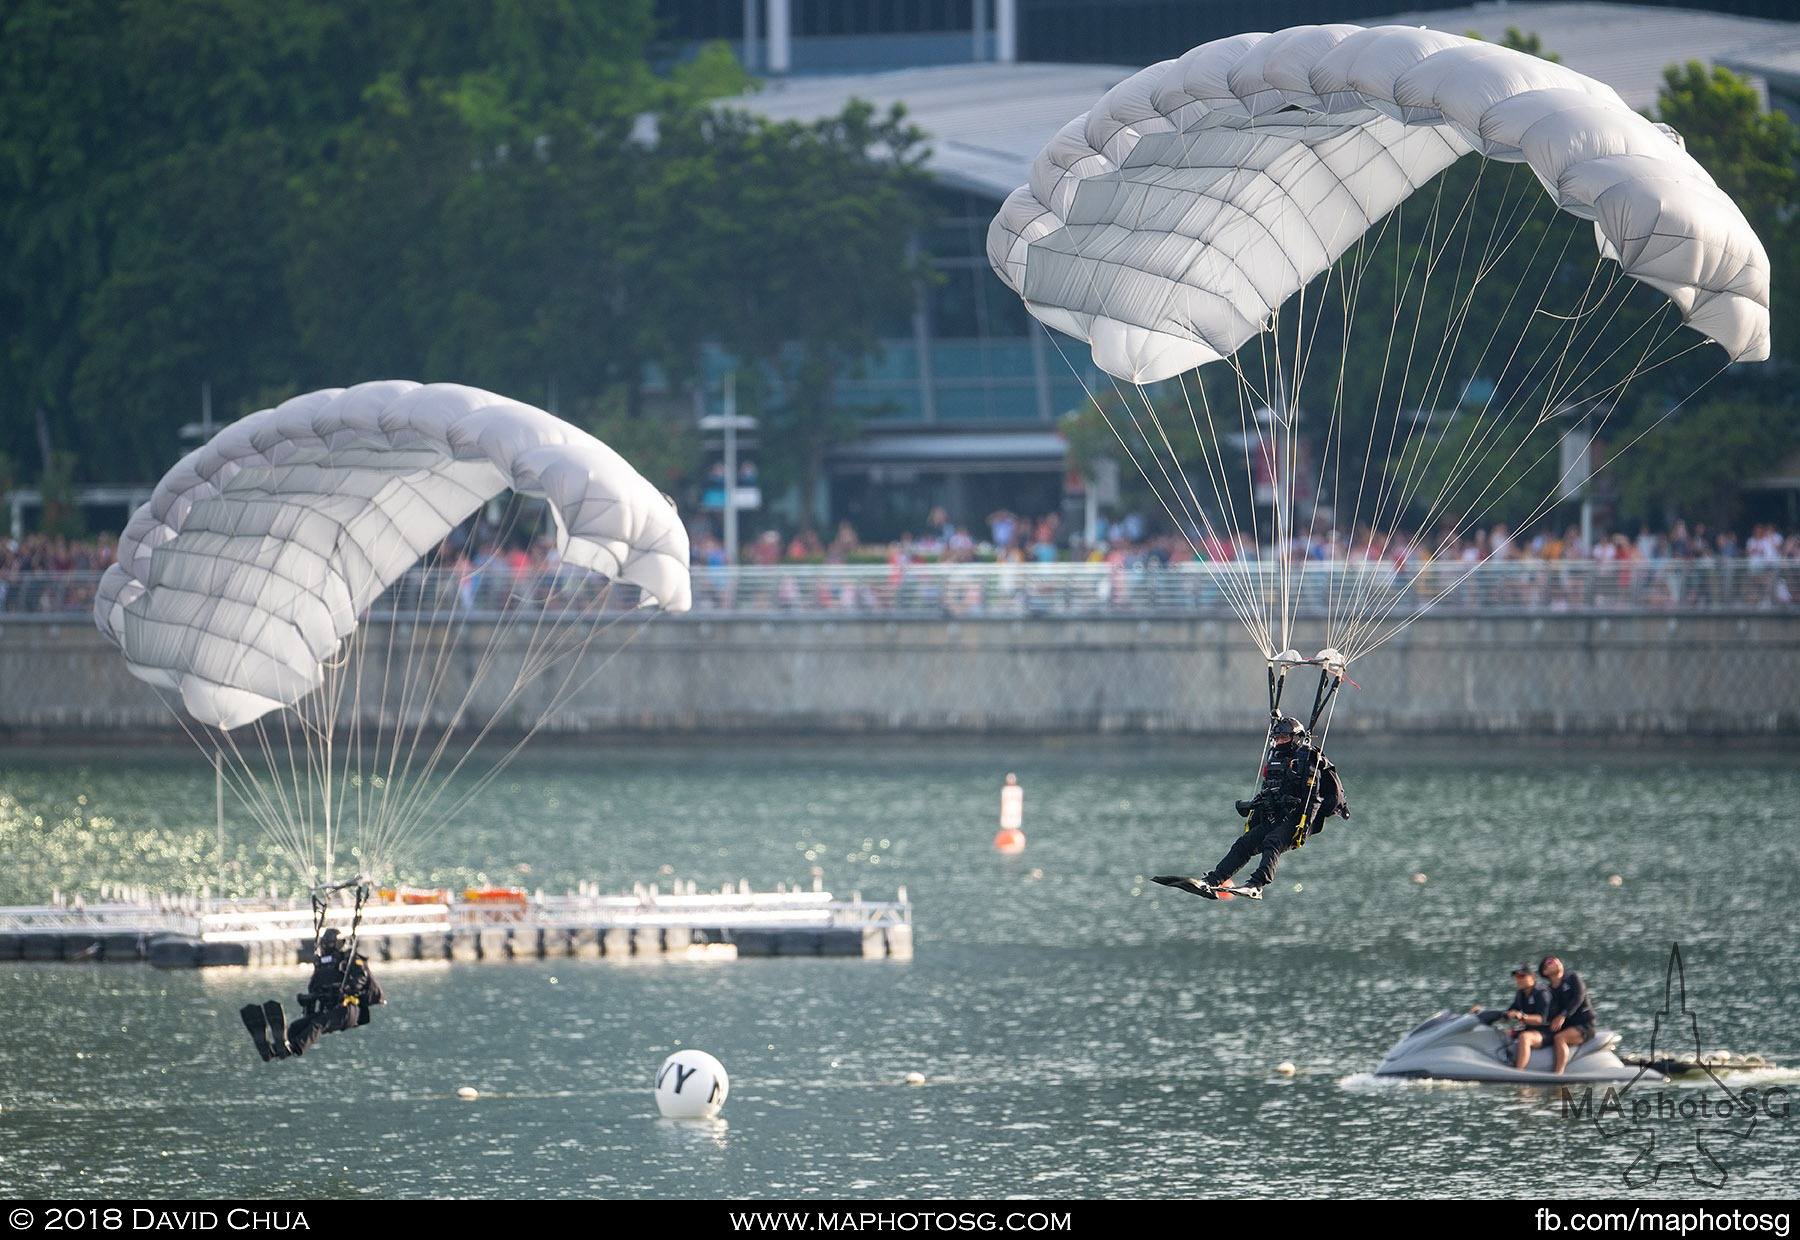 06. Two divers land into the waters around the Marina Bay floating platform.